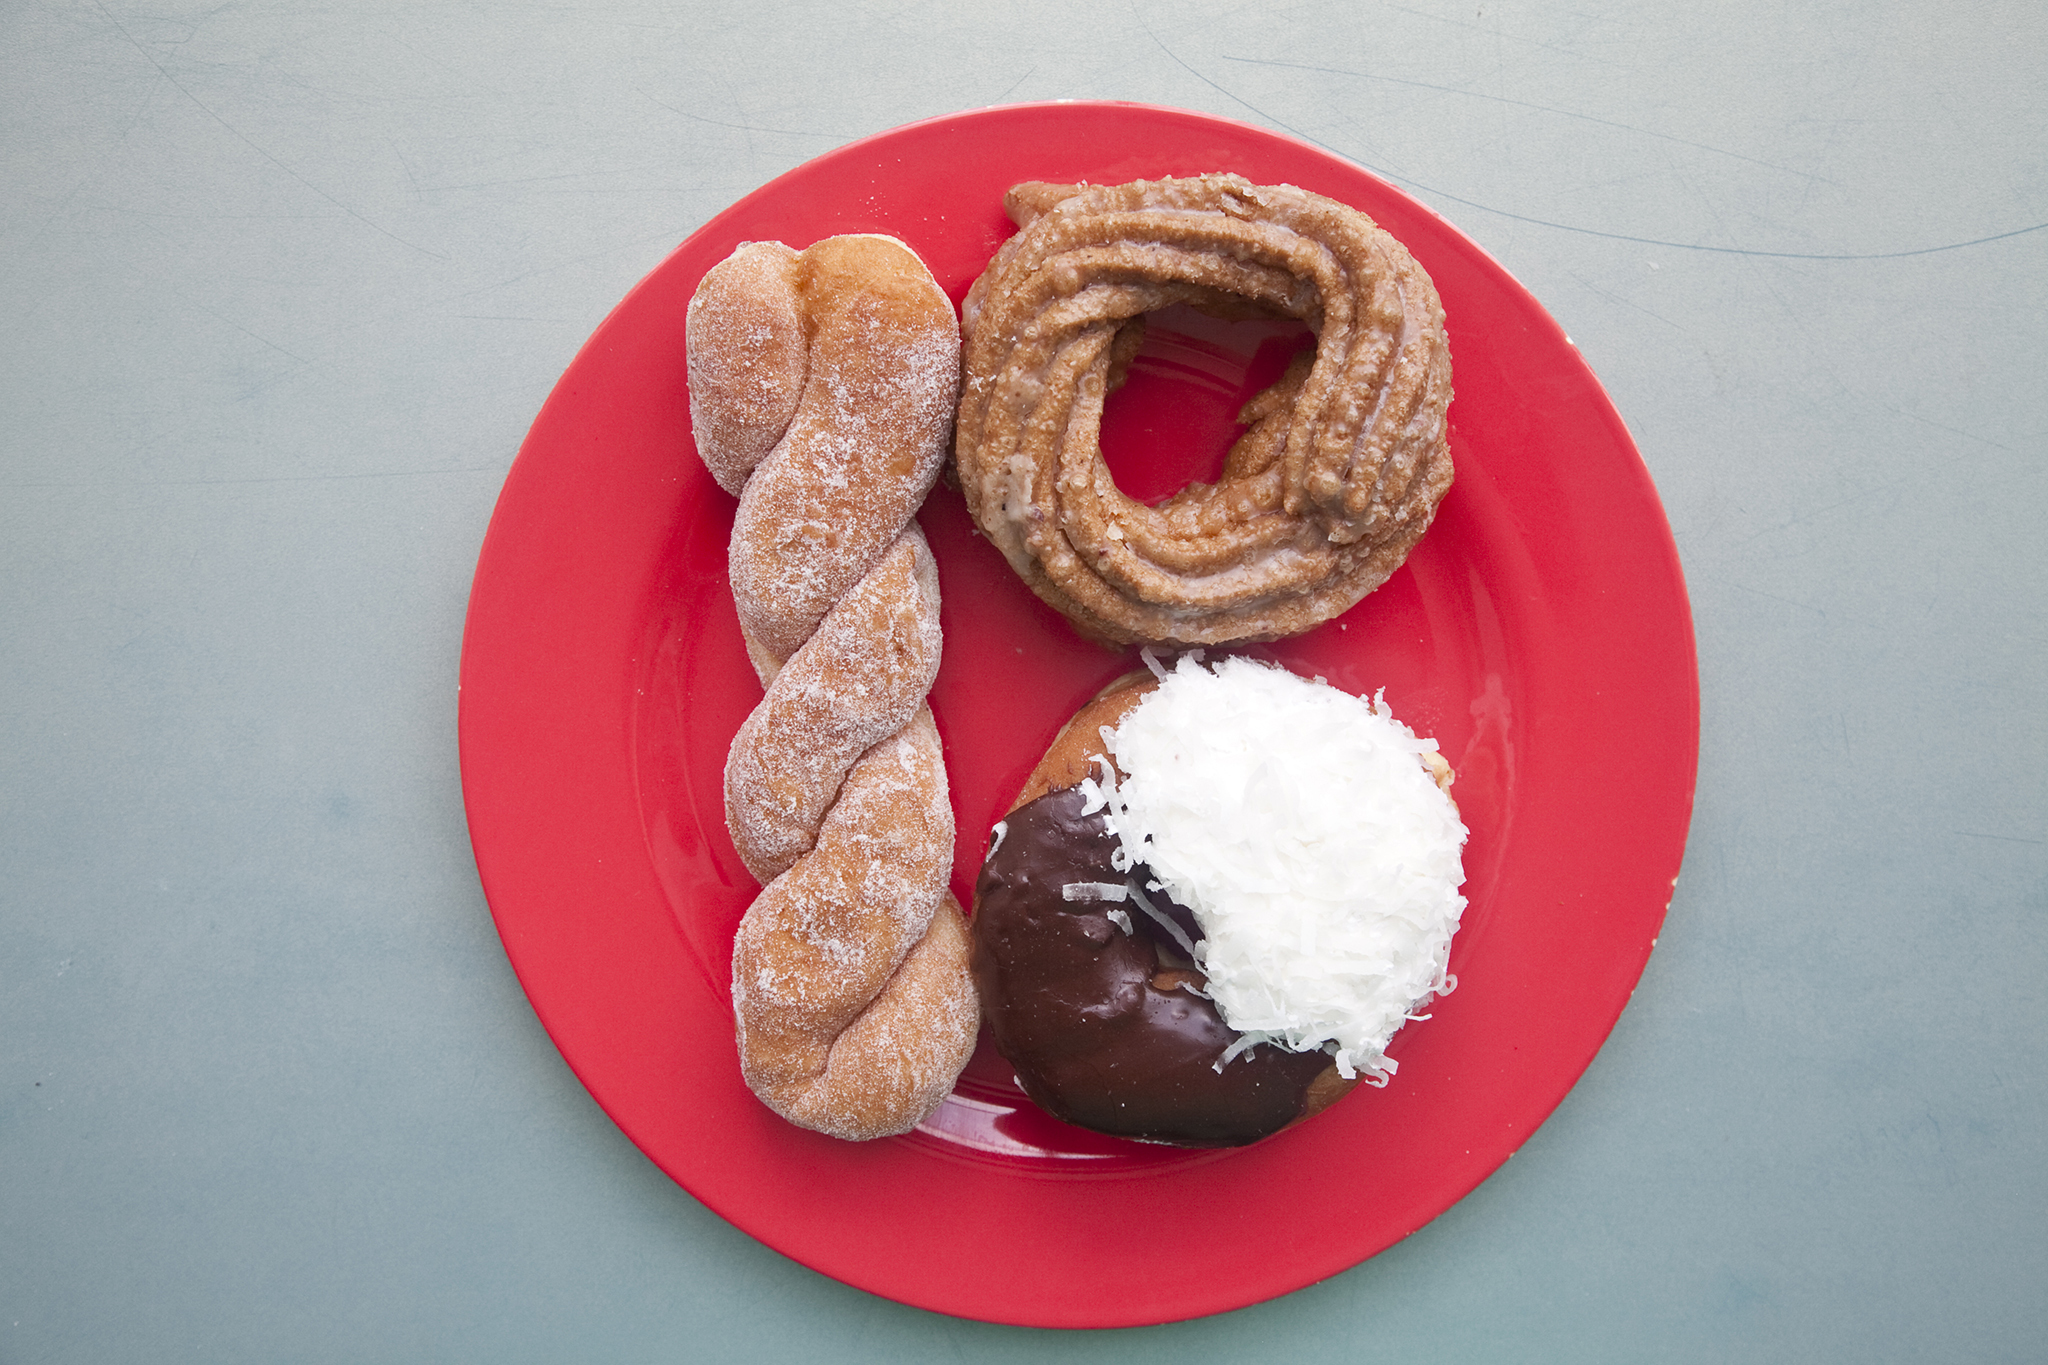 Best doughnut shops for topping aficionados: Peter Pan Donut & Pastry Shop